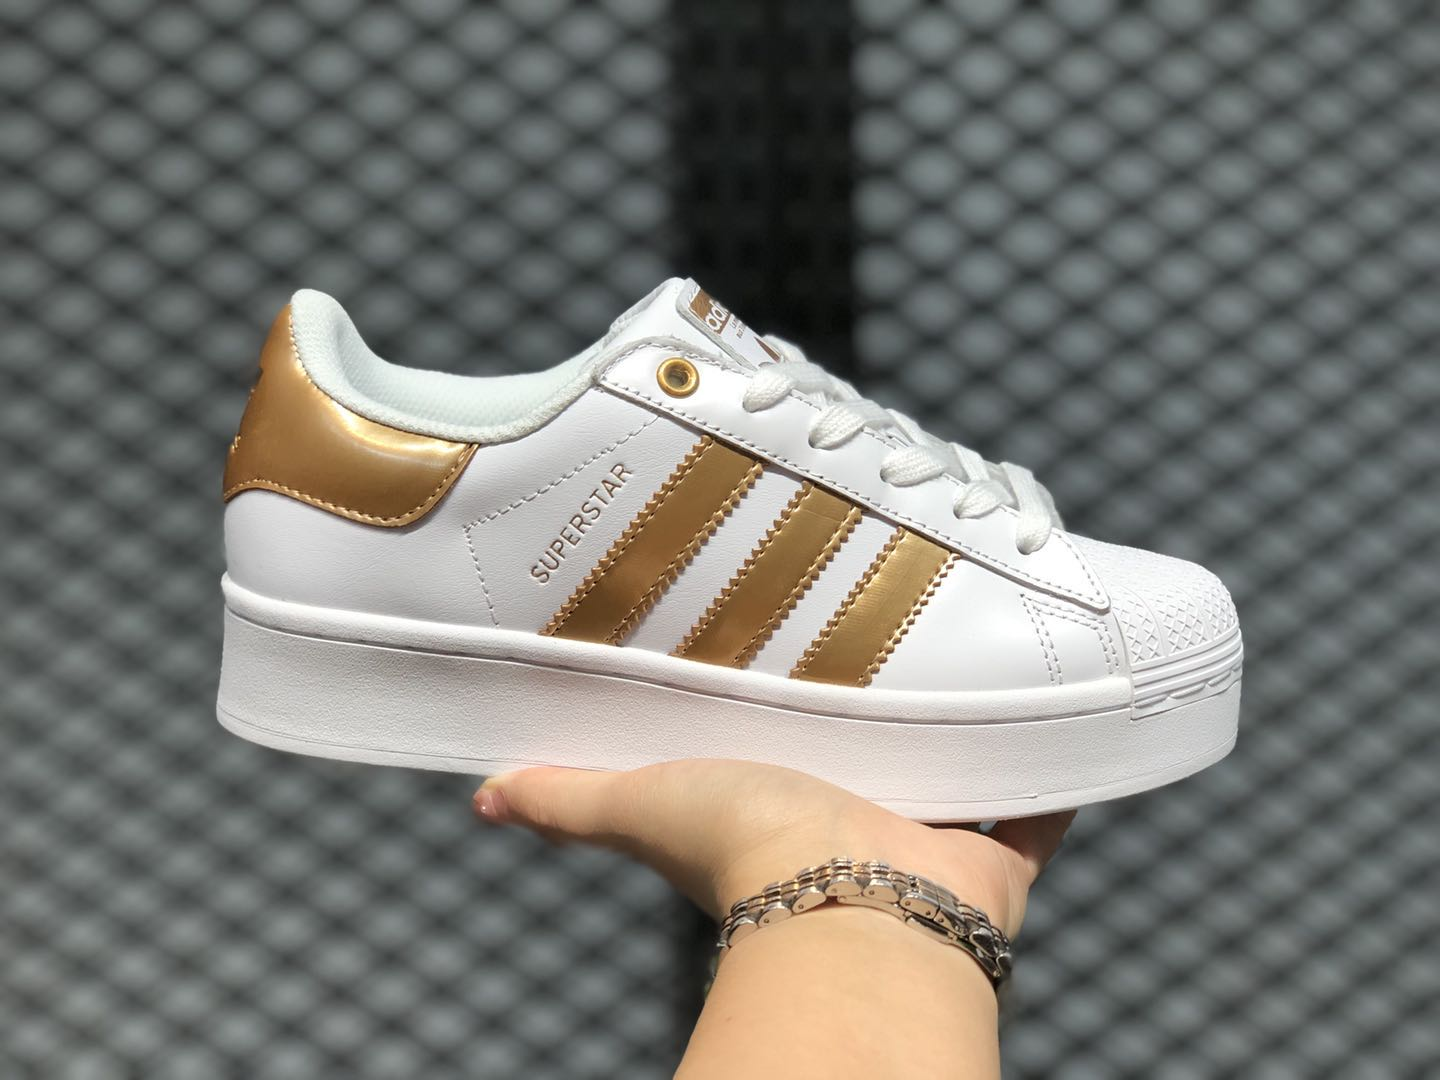 Pendiente Interpretación Contribuyente  Best Sell Adidas Superstar Cloud White/Copper Metallic FX4273 | kids white  leather nike shox size 5.5 shoes